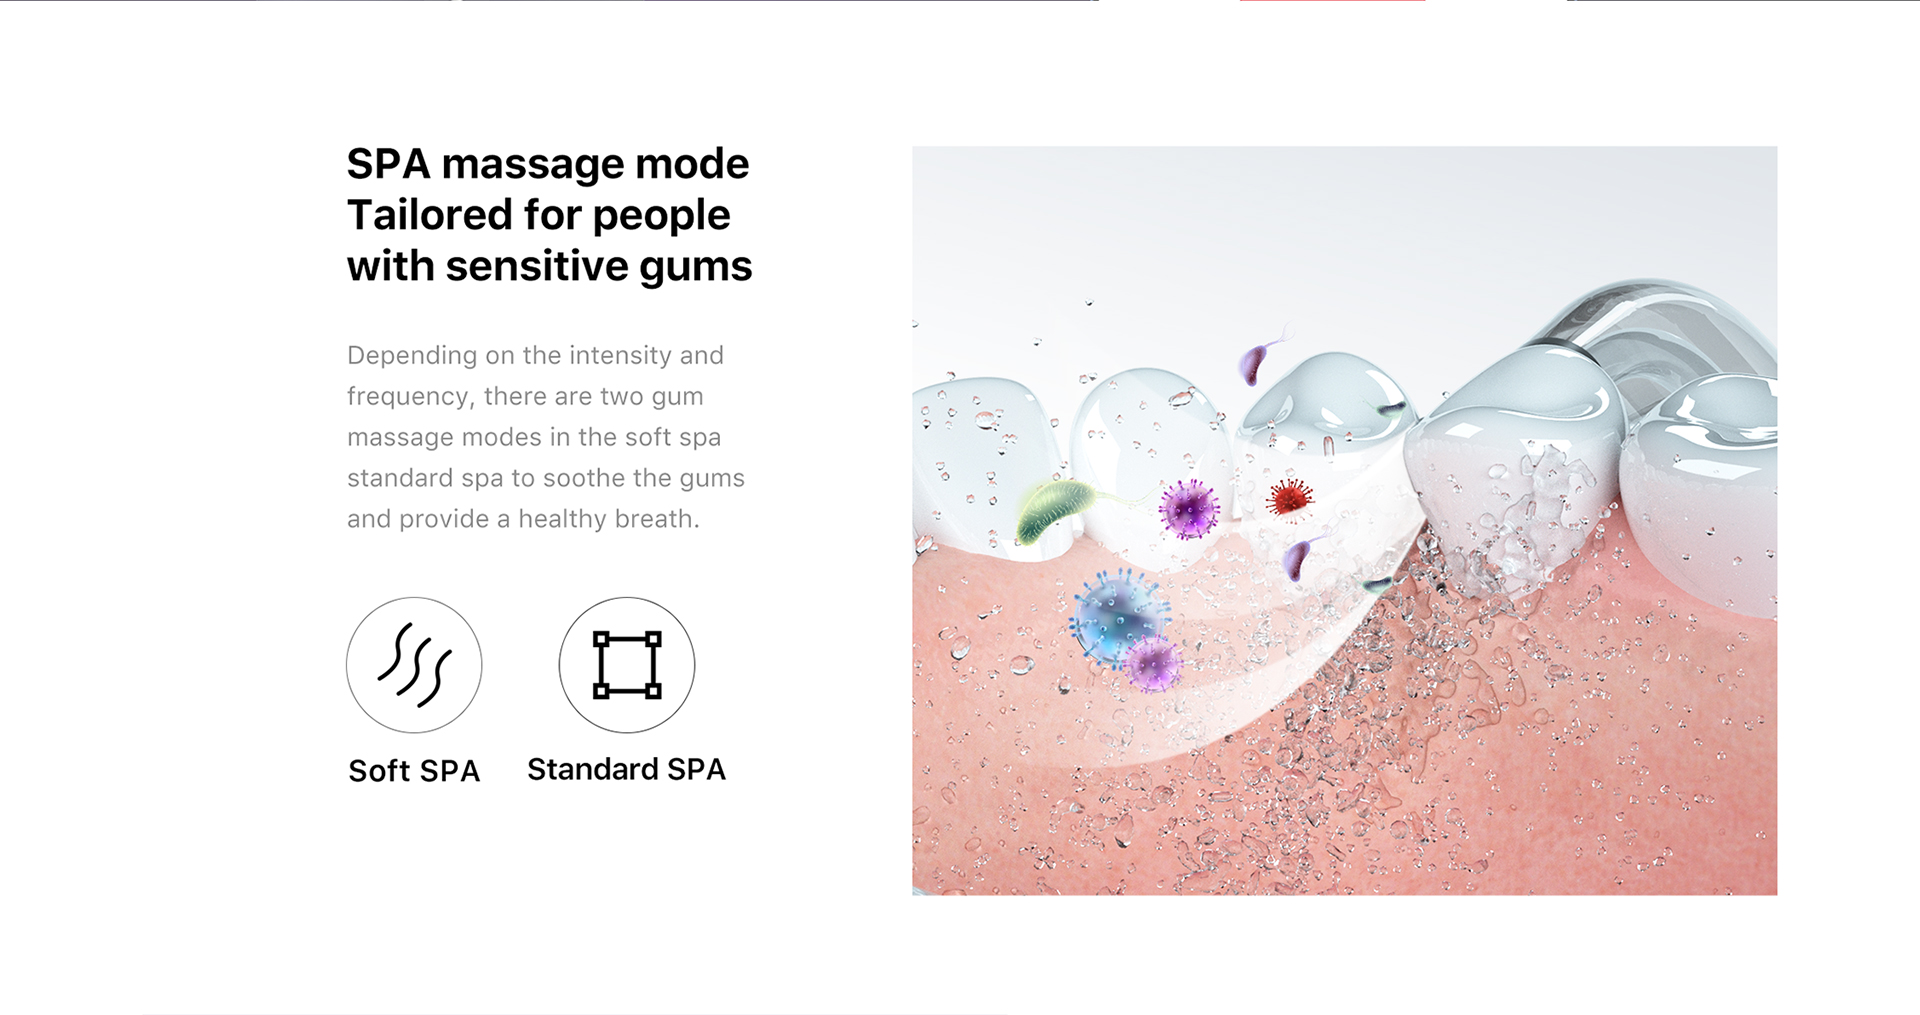 SPA massage mode tailored for people with sensitive gums